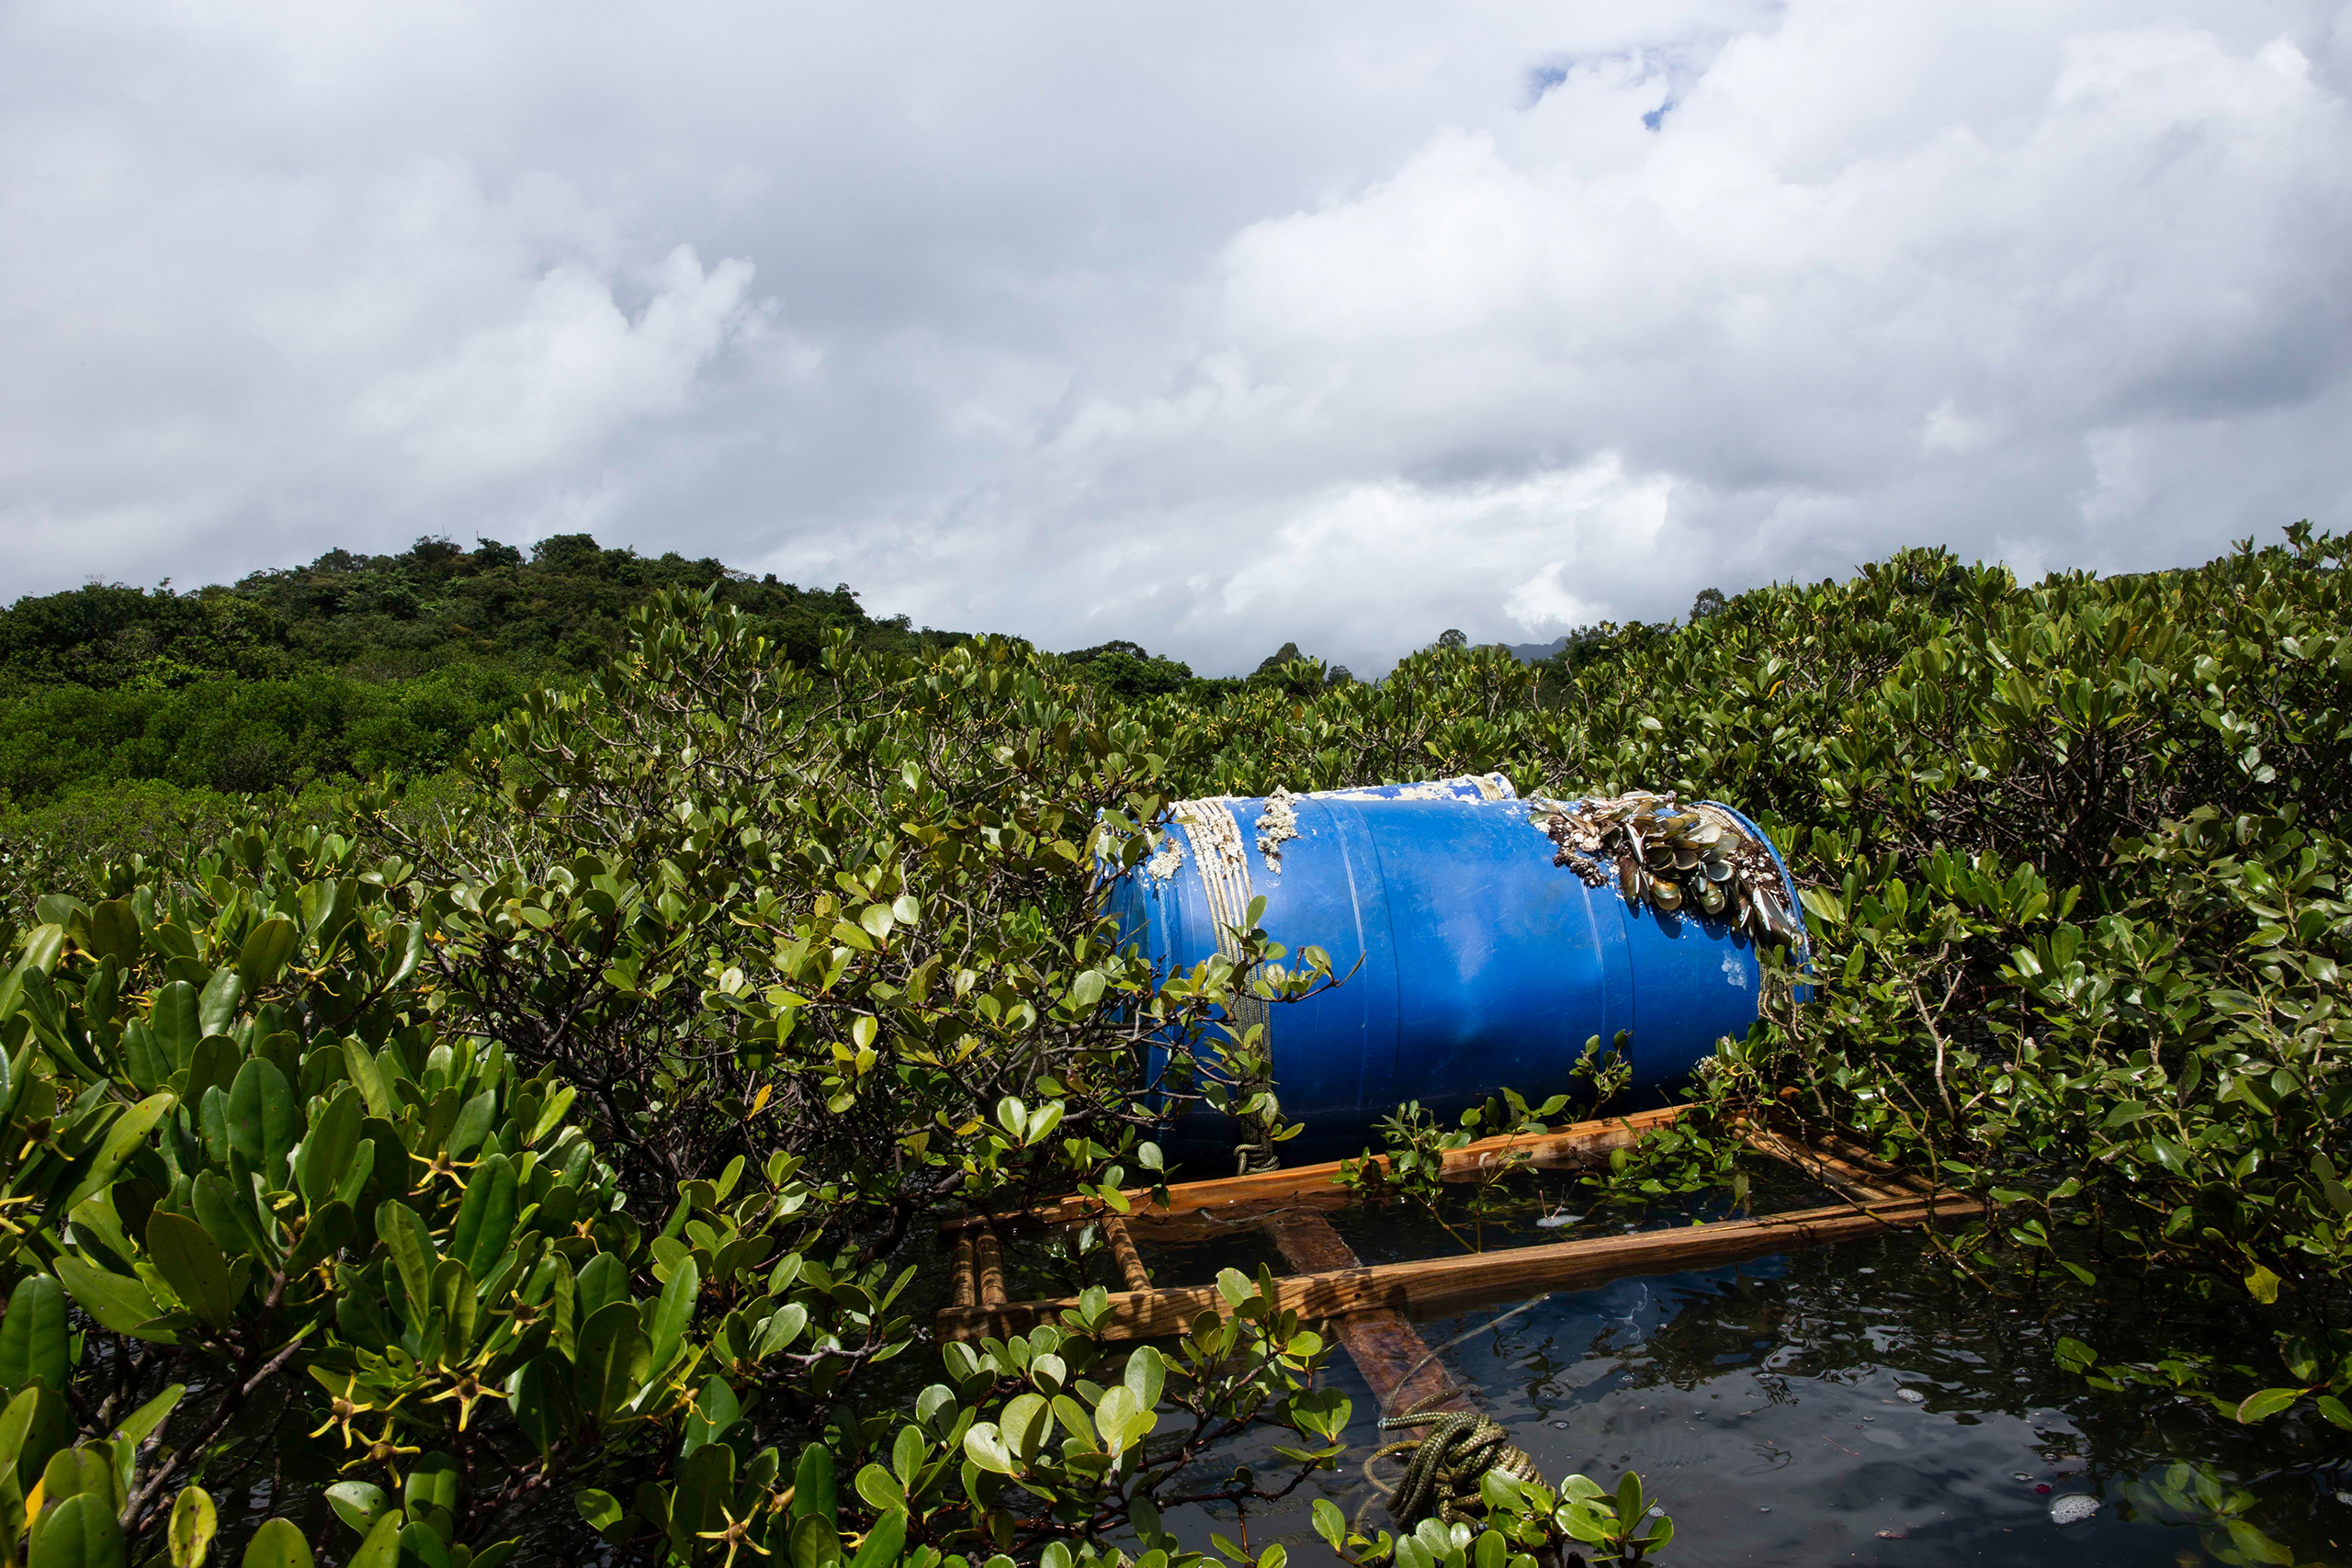 A barrel float used by local fishers is caught in a tangle of mangrove branches in Three Fathoms Cove on the eastern side of the Hong Kong SAR. Protected as a site of special scientific interest, the mangroves here remain vulnerable to overfishing and pollution from aquaculture due to limited capacity for monitoring and enforcement. (Image: Katherine Cheng / China Dialogue)